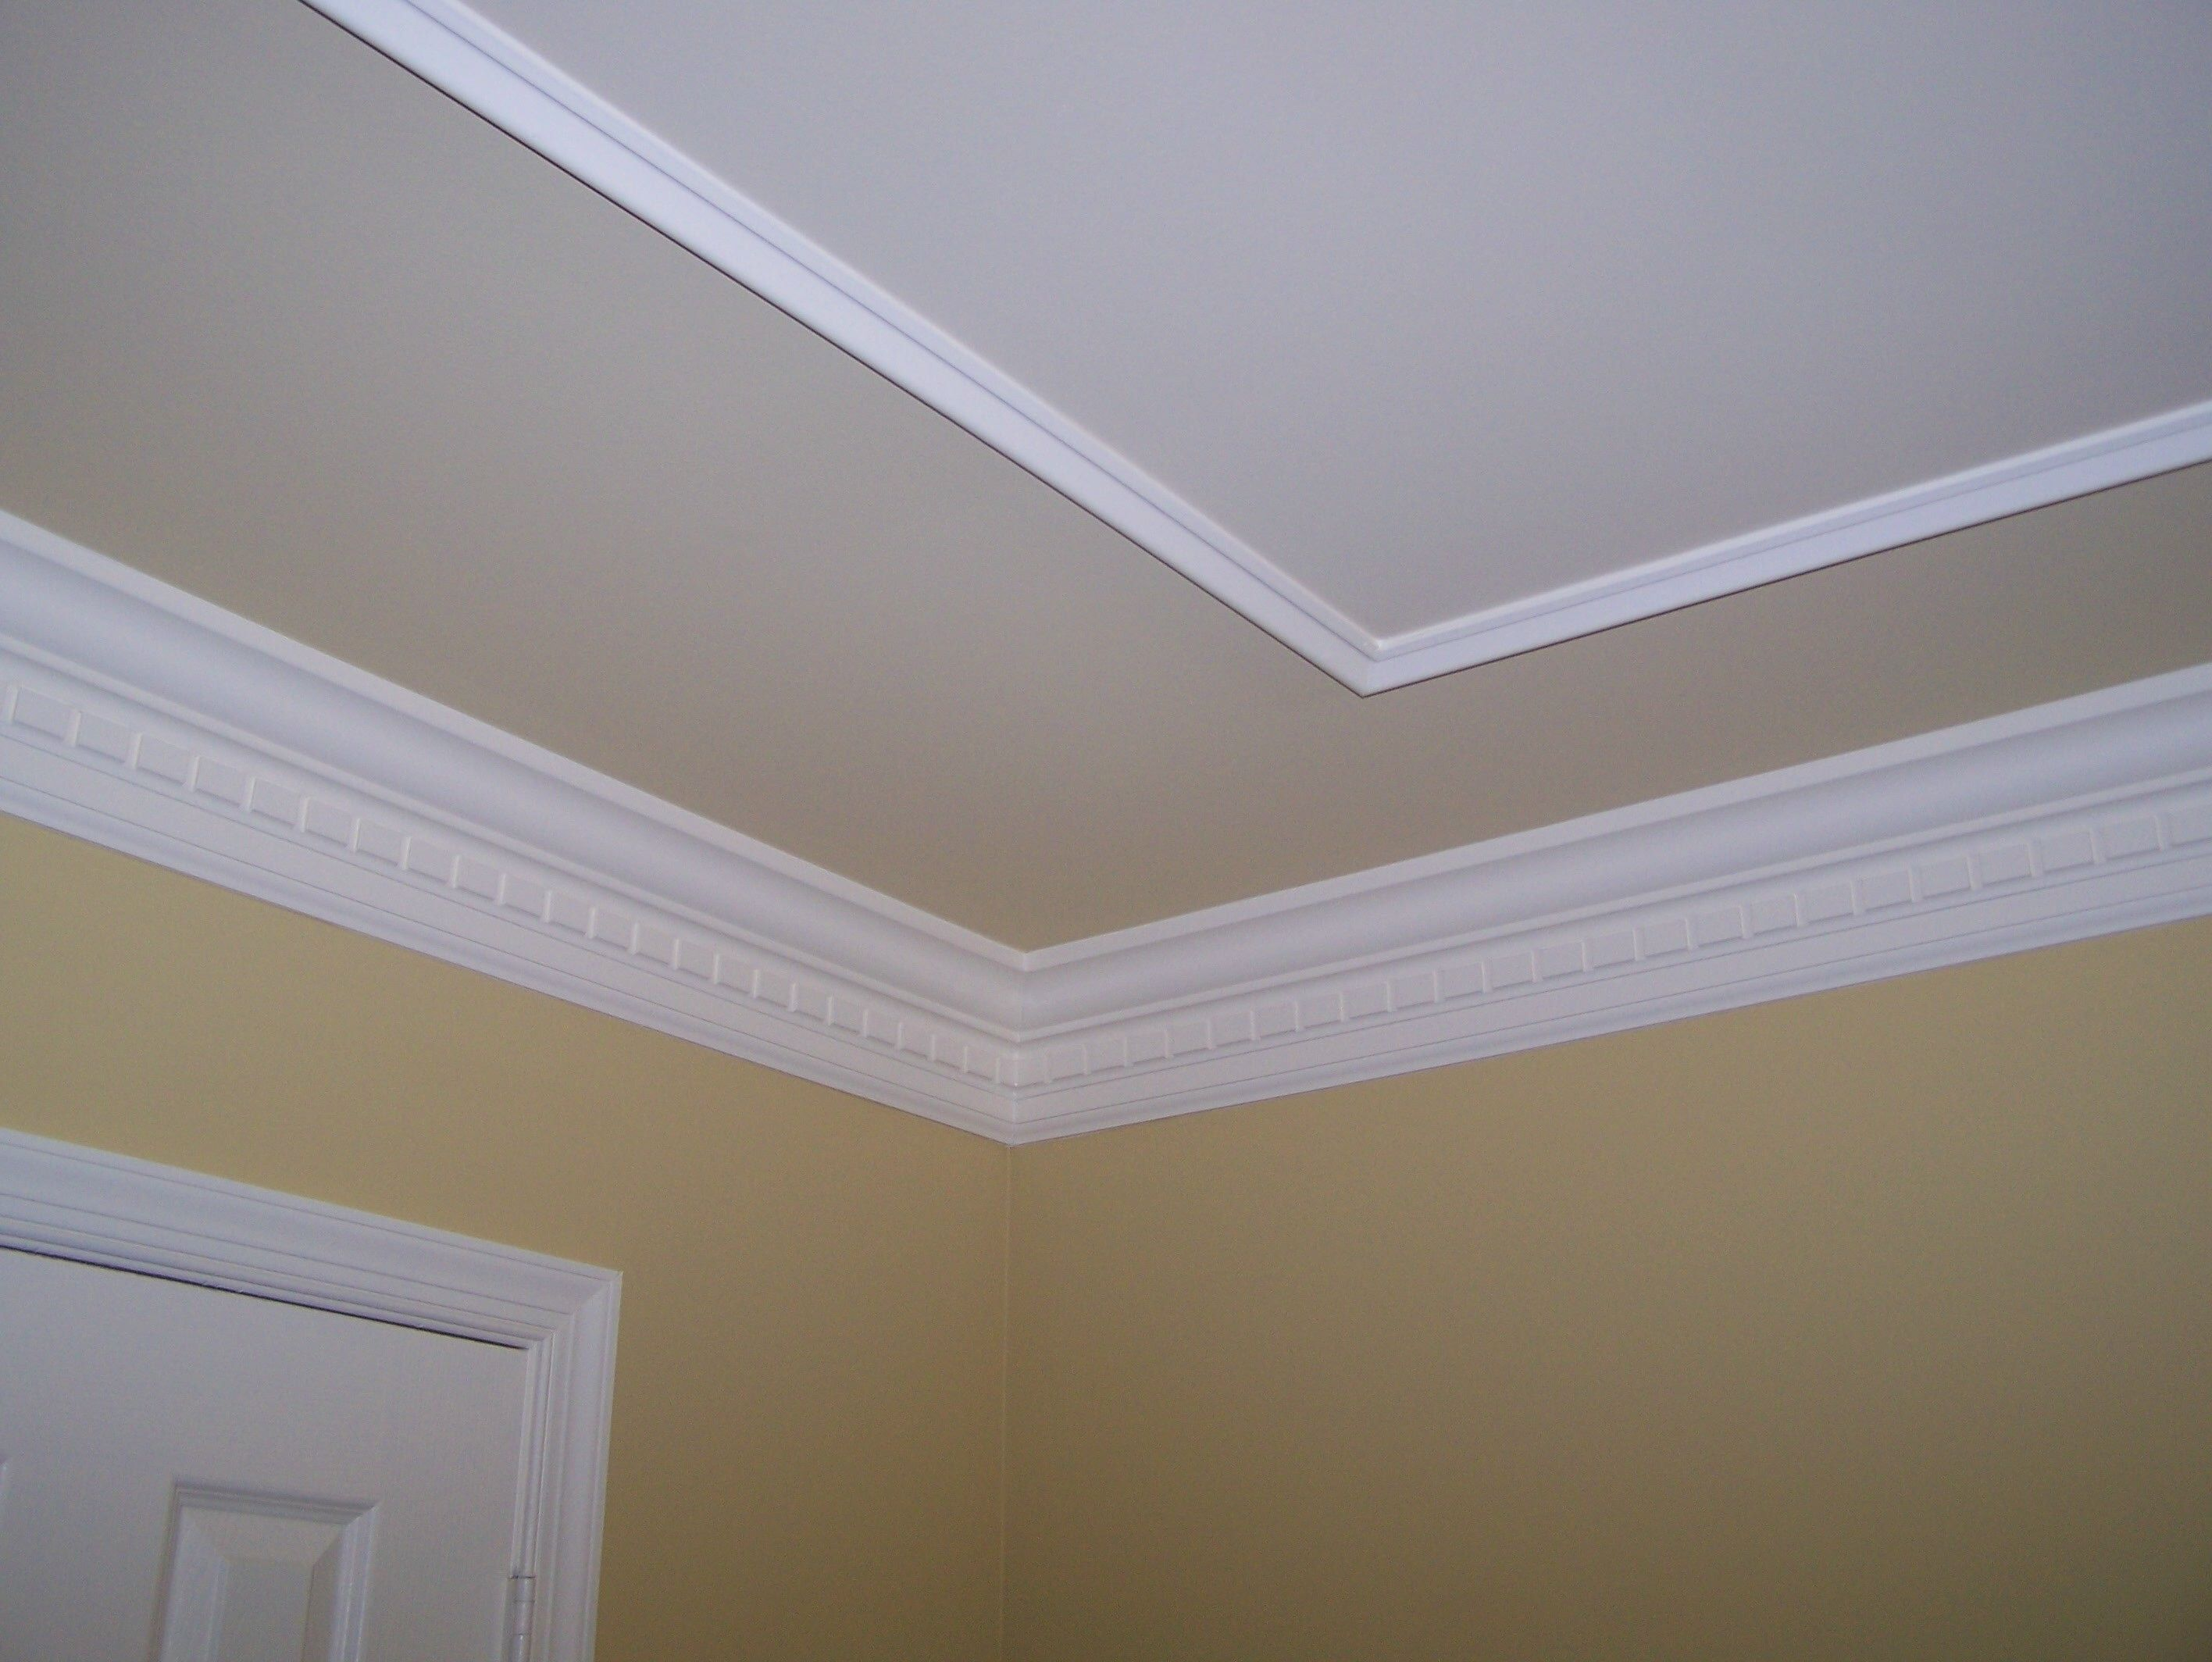 Bedroom ceiling paint ideas - Painted Ceiling Gallery Carpentry Drywall